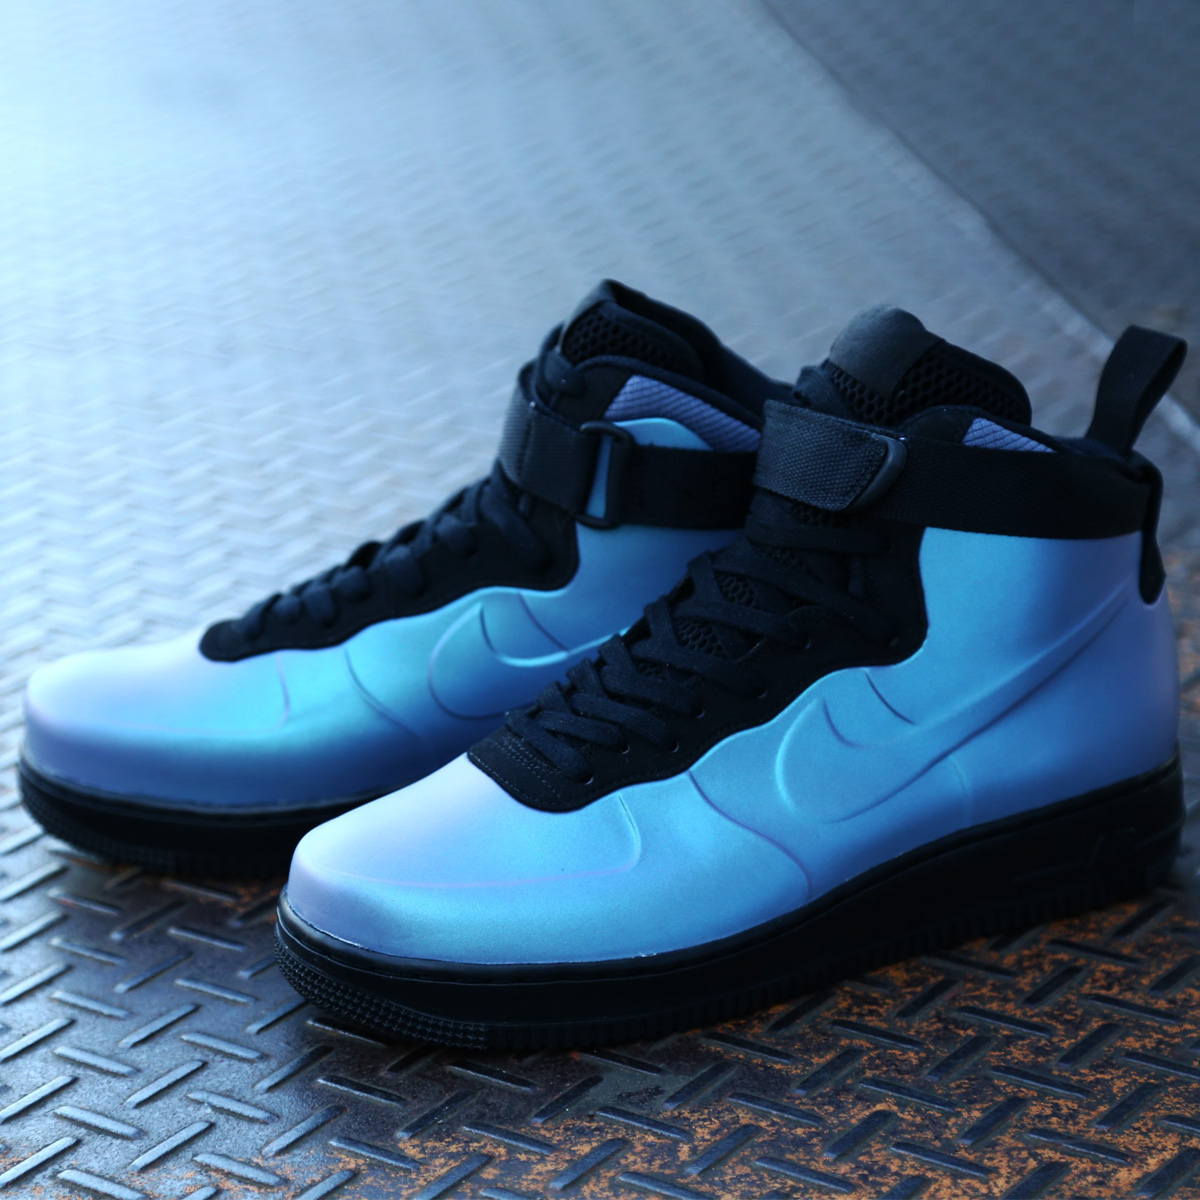 NIKE AIR FORCE 1 FOAMPOSITE CUP (ナイキ エア フォース 1 フォームポジット カップ)LIGHT CARBON/LIGHT CARBON-BLACK【メンズ スニーカー】18SP-S